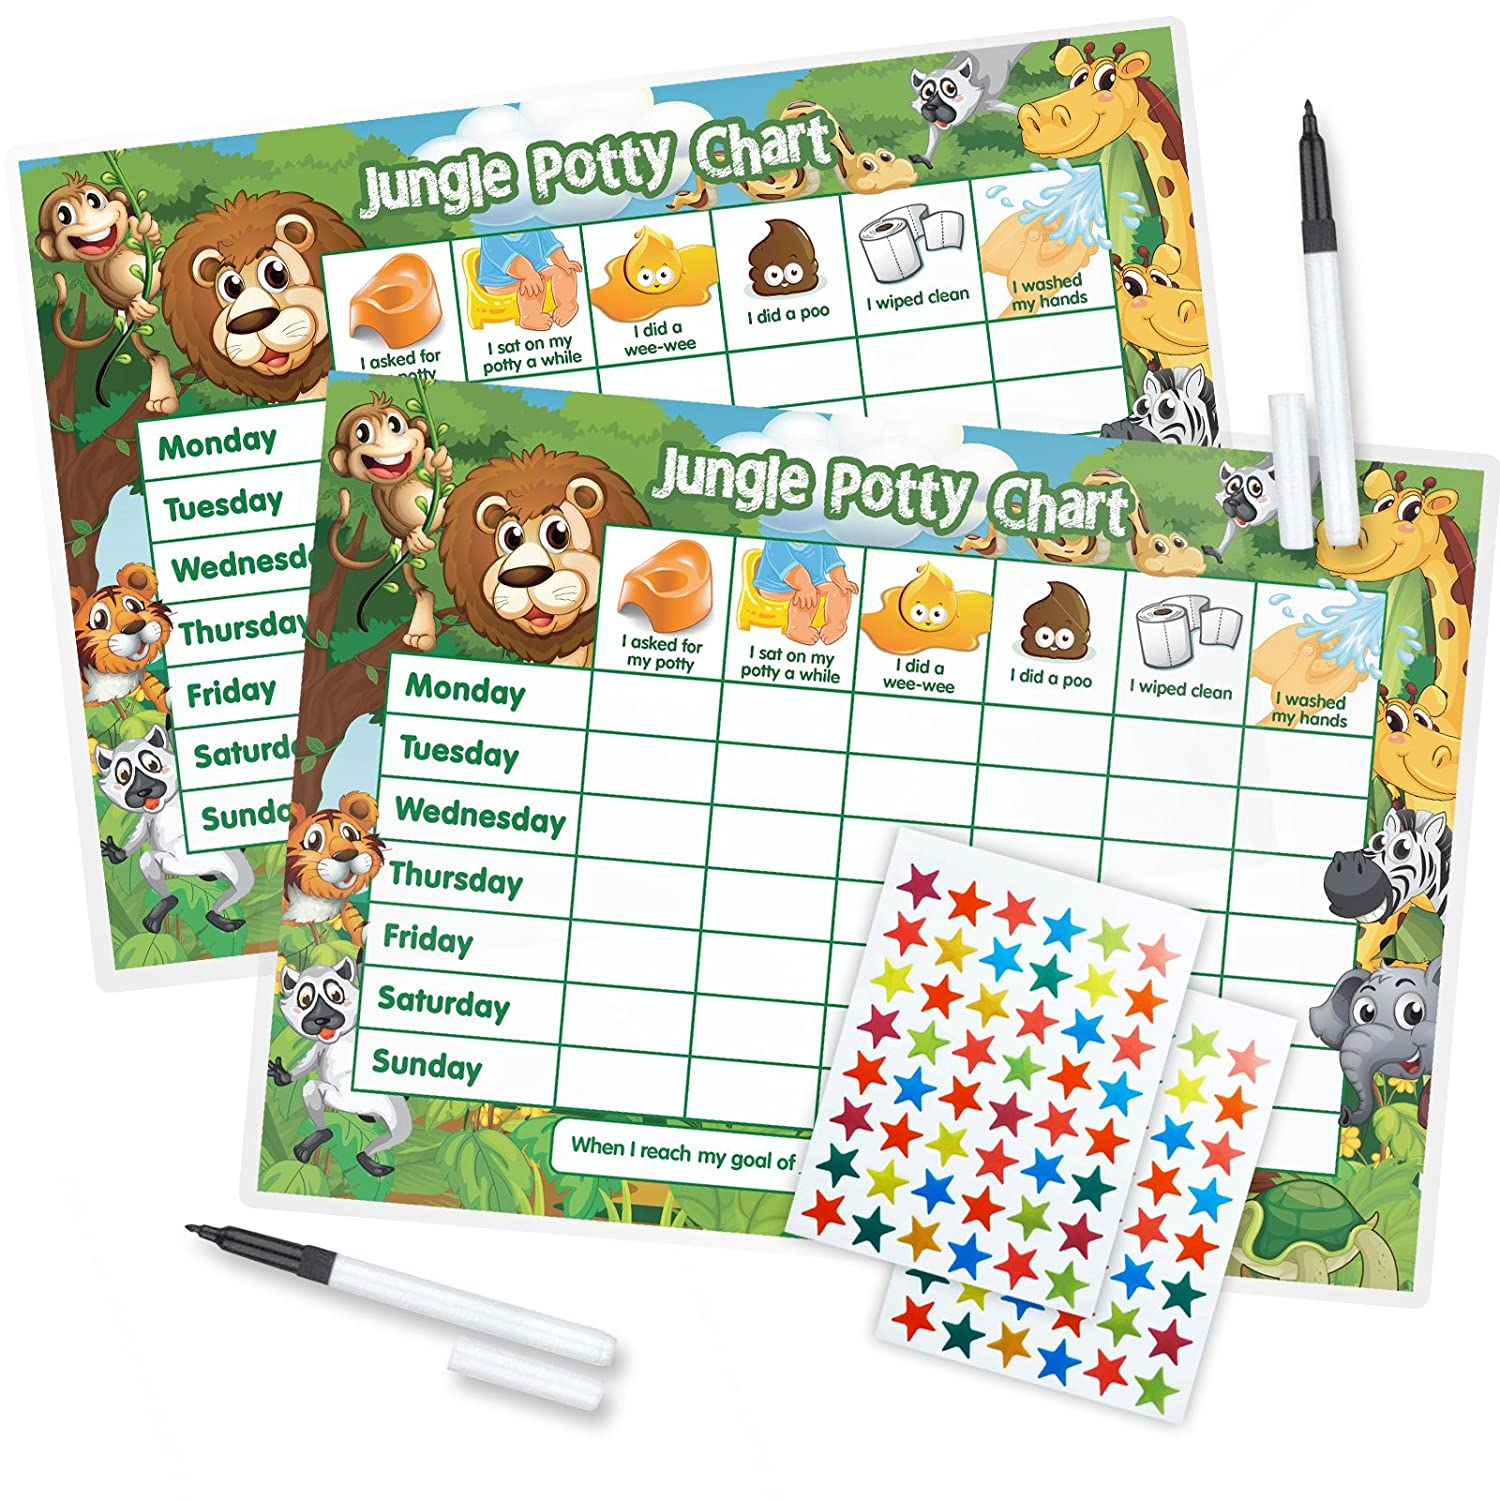 Funky Monkey House TWIN PACK Jungle Potty Training TWIN PACK (including FREE Star Stickers and Pen)